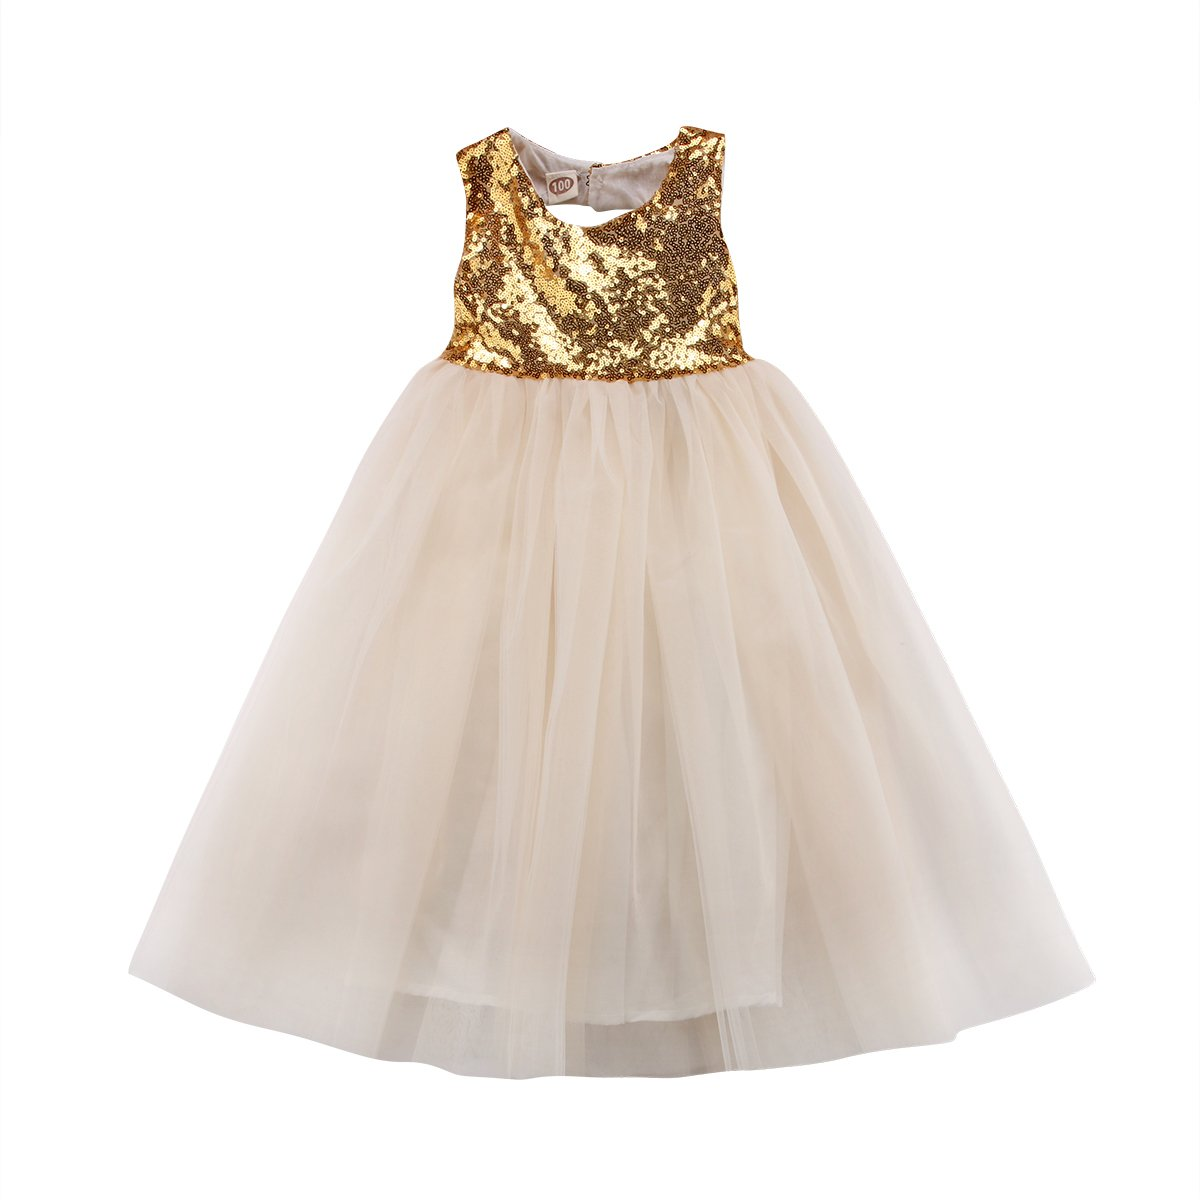 Imcute Little Girls Kids Sleeveless Sequin Princess Tutu Tulle Dress